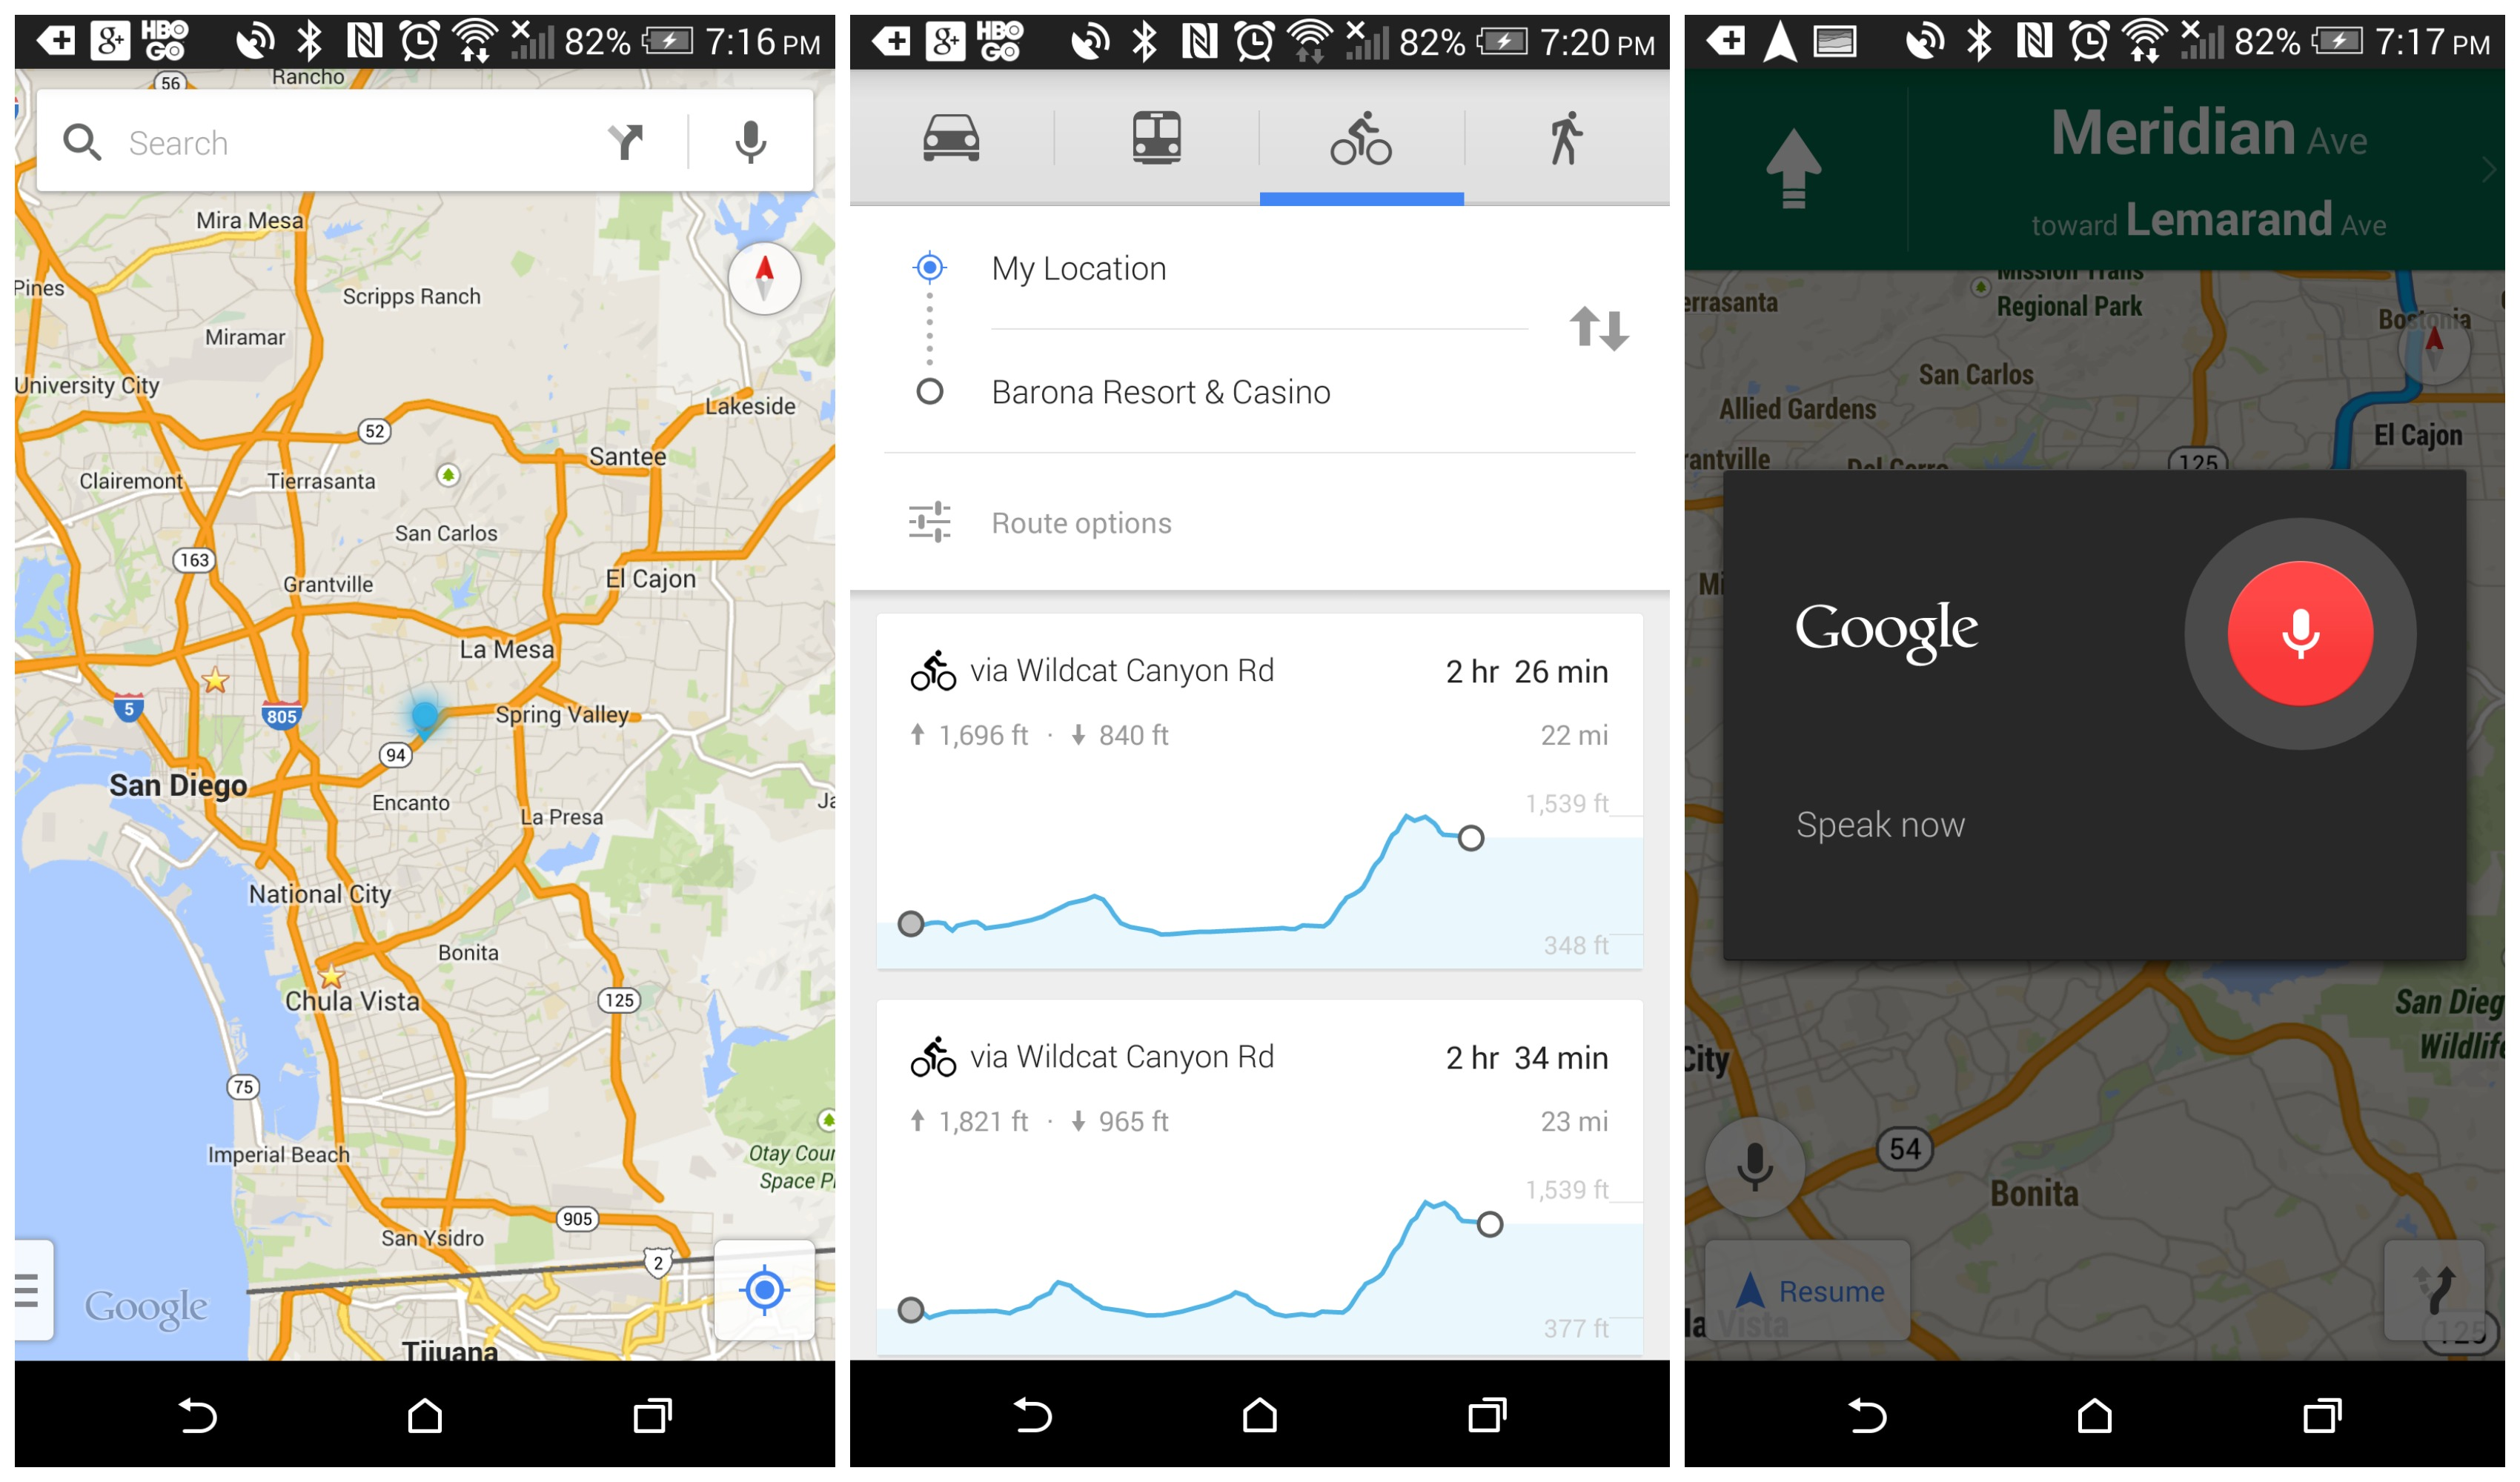 DOWNLOAD: Google Maps 8.2 update with voice controls